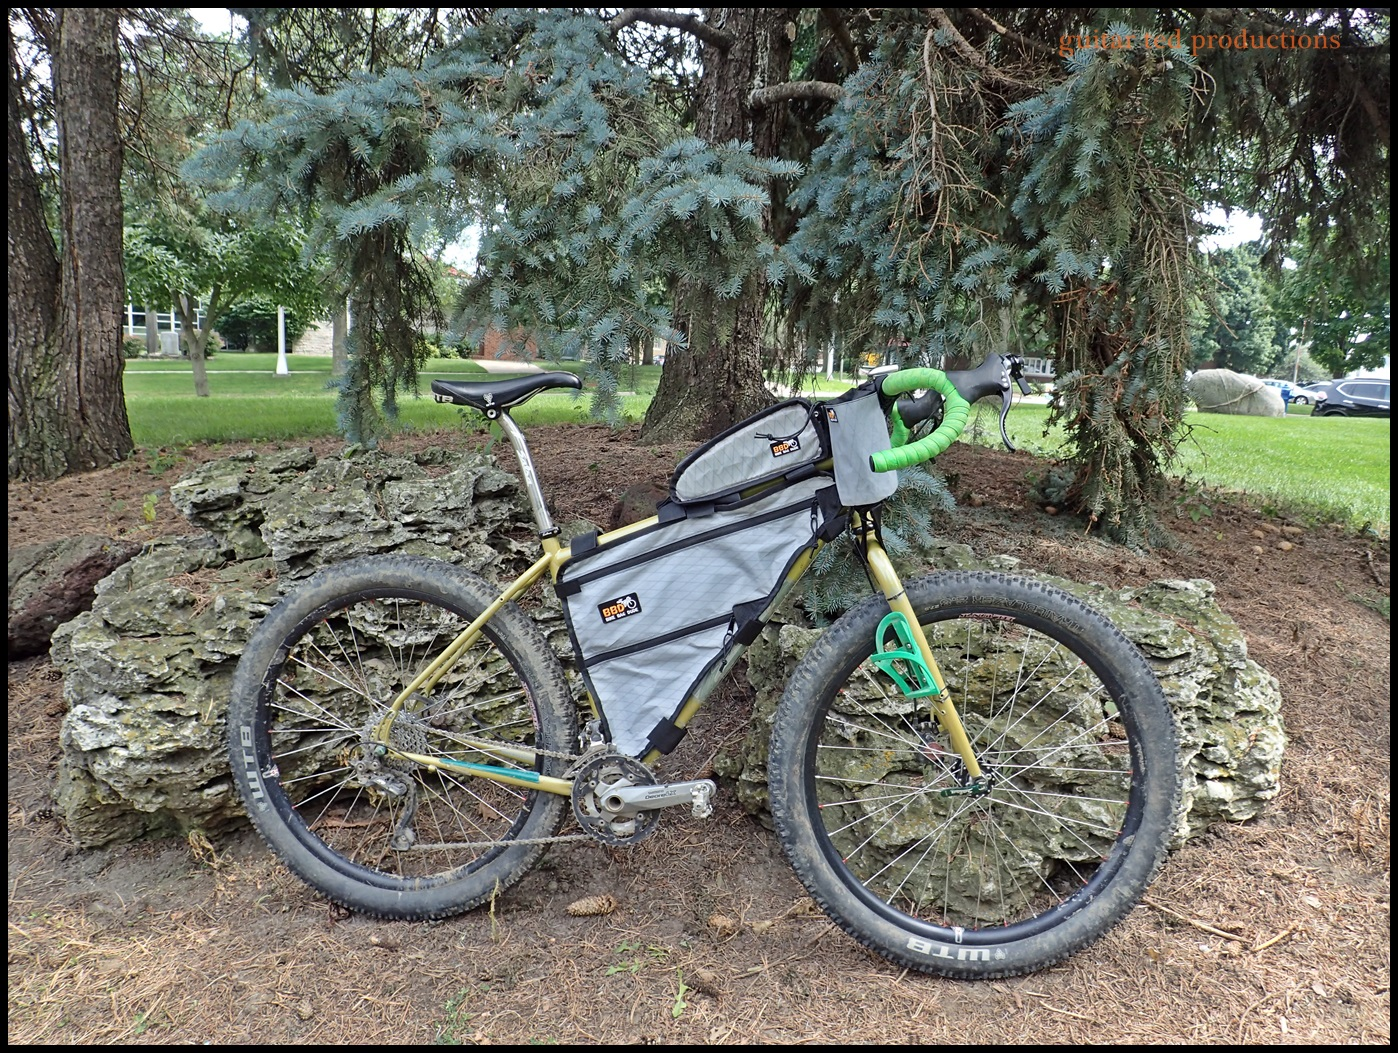 Guitar Ted Productions: Salsa Cycles Fargo: Versatility Defined